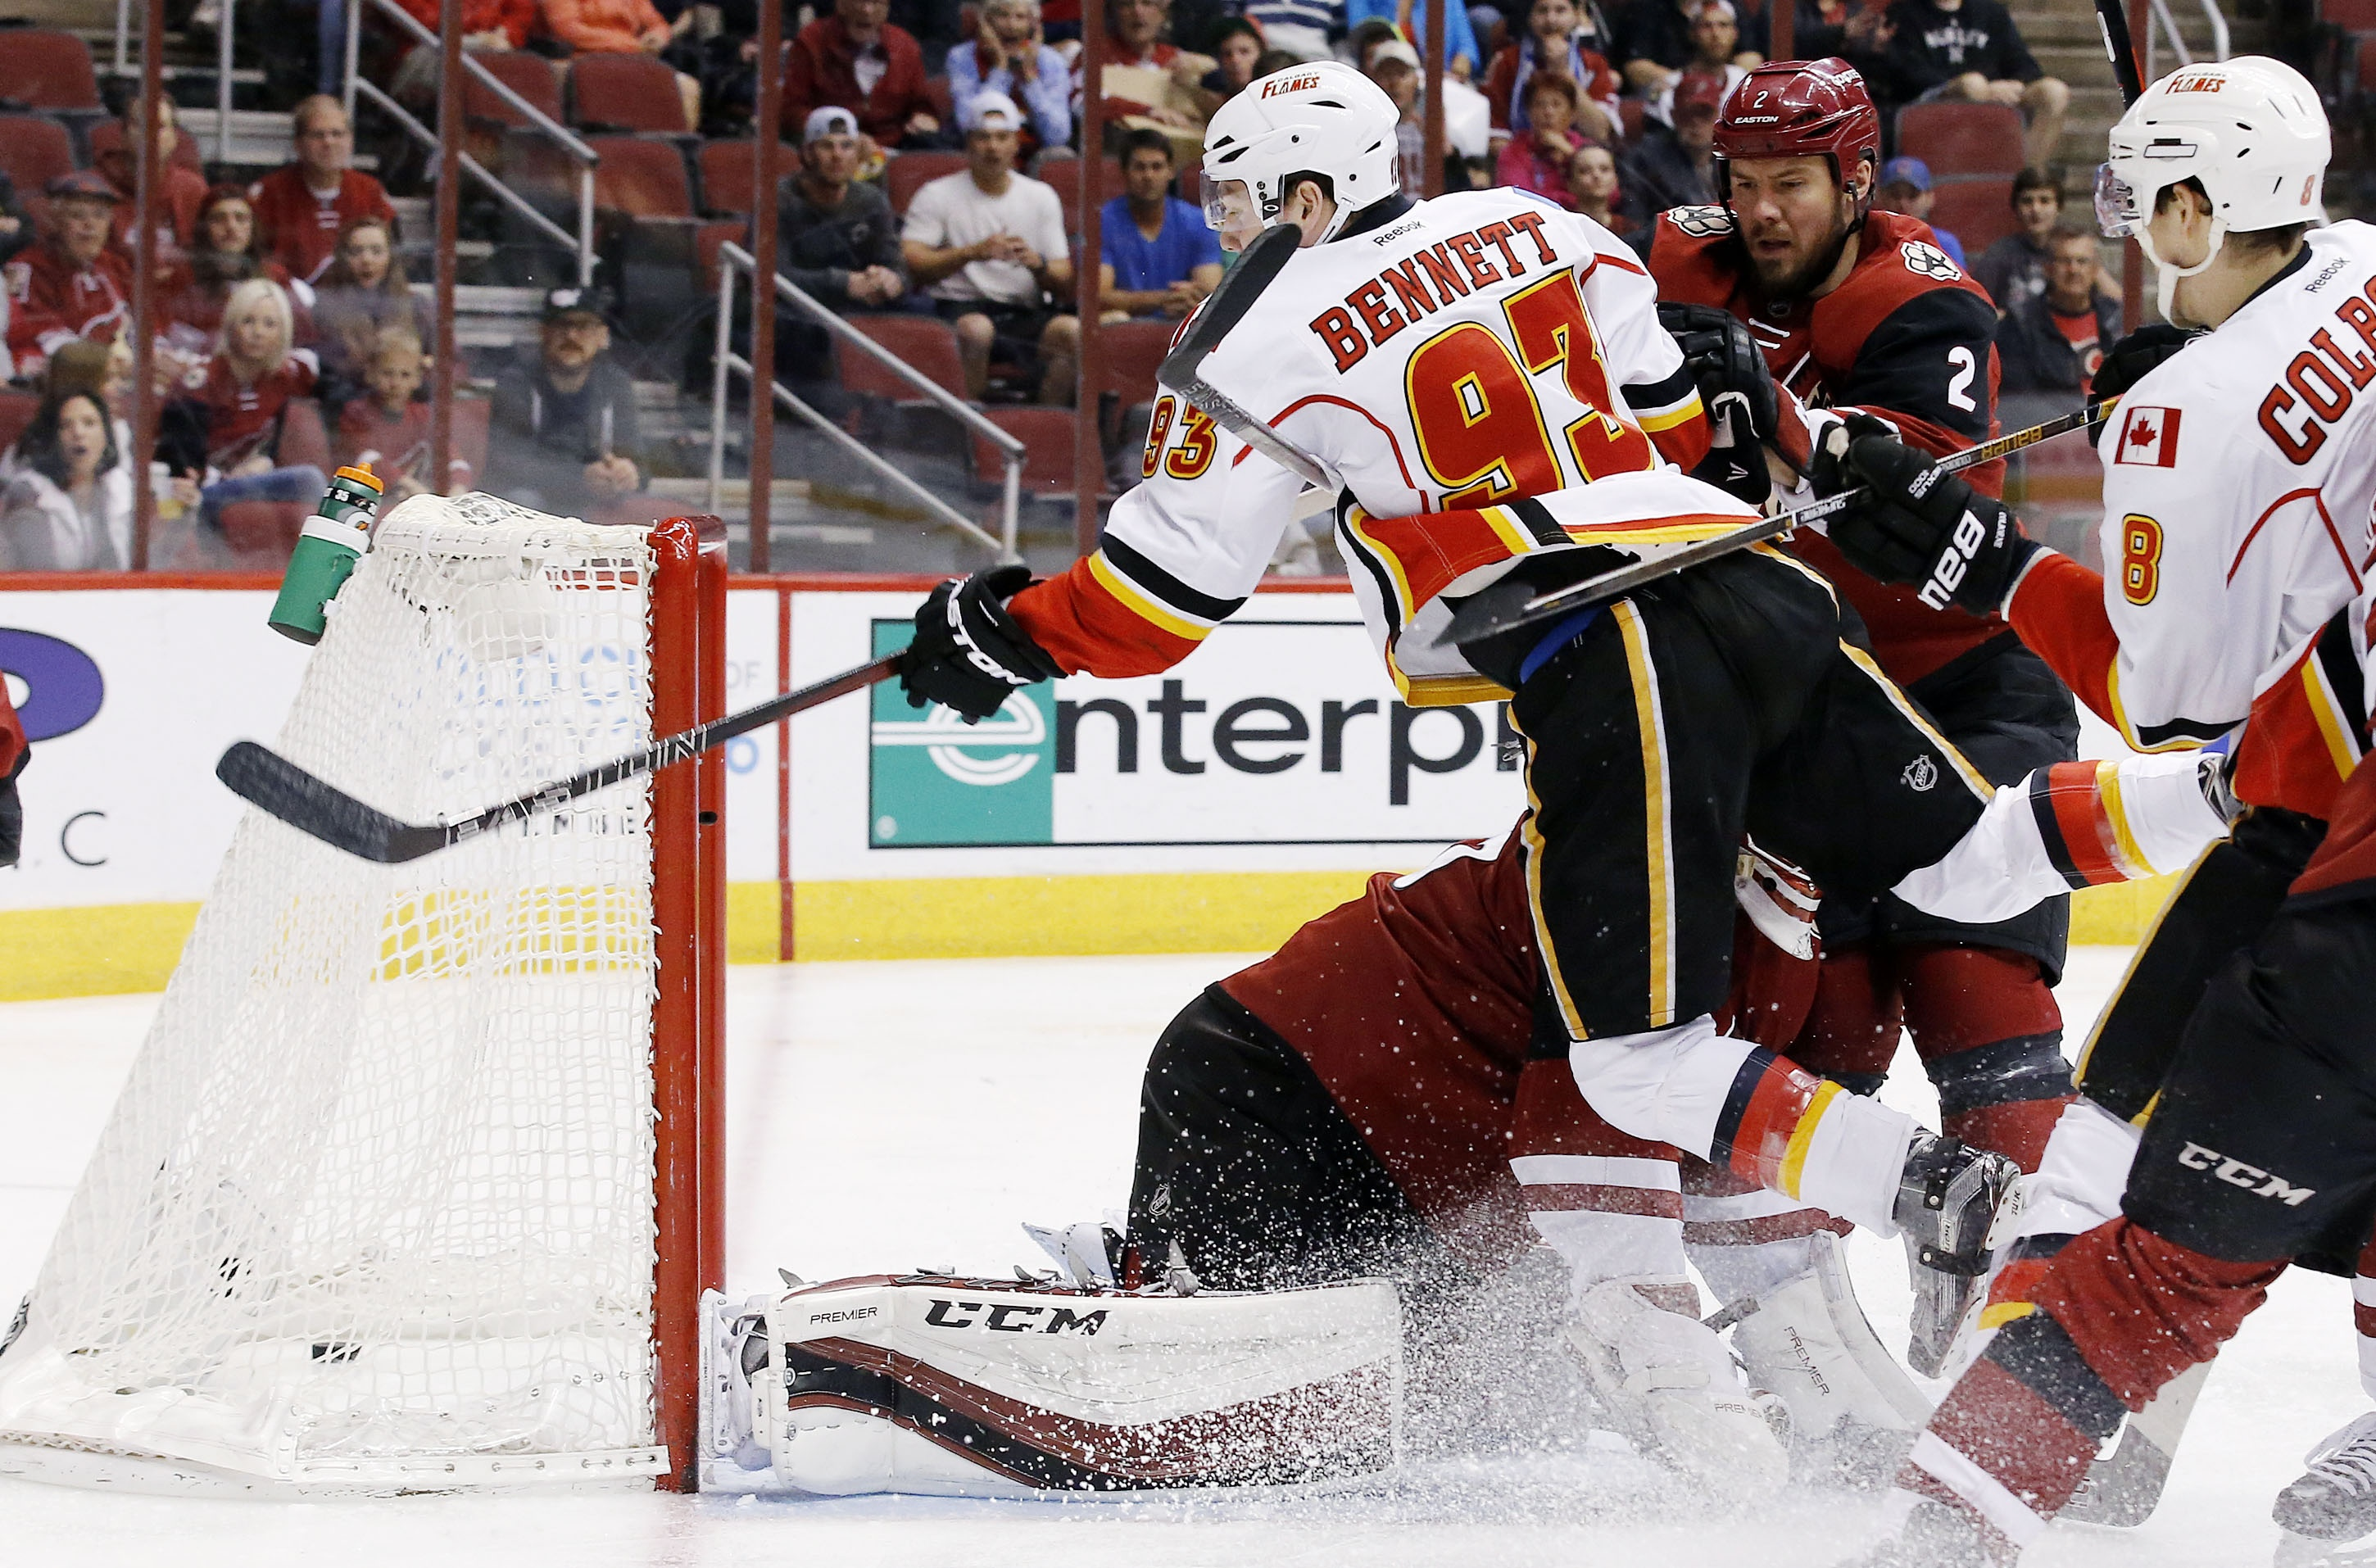 Calgary Flames' Sam Bennett (93) gets sent flying into the air by Arizona Coyotes' Nicklas Grossmann (2), of Sweden, but not before he sends the puck past Coyotes goalie Louis Domingue, bottom left, for a goal as Flames' Joe Colborne (8) watches during th